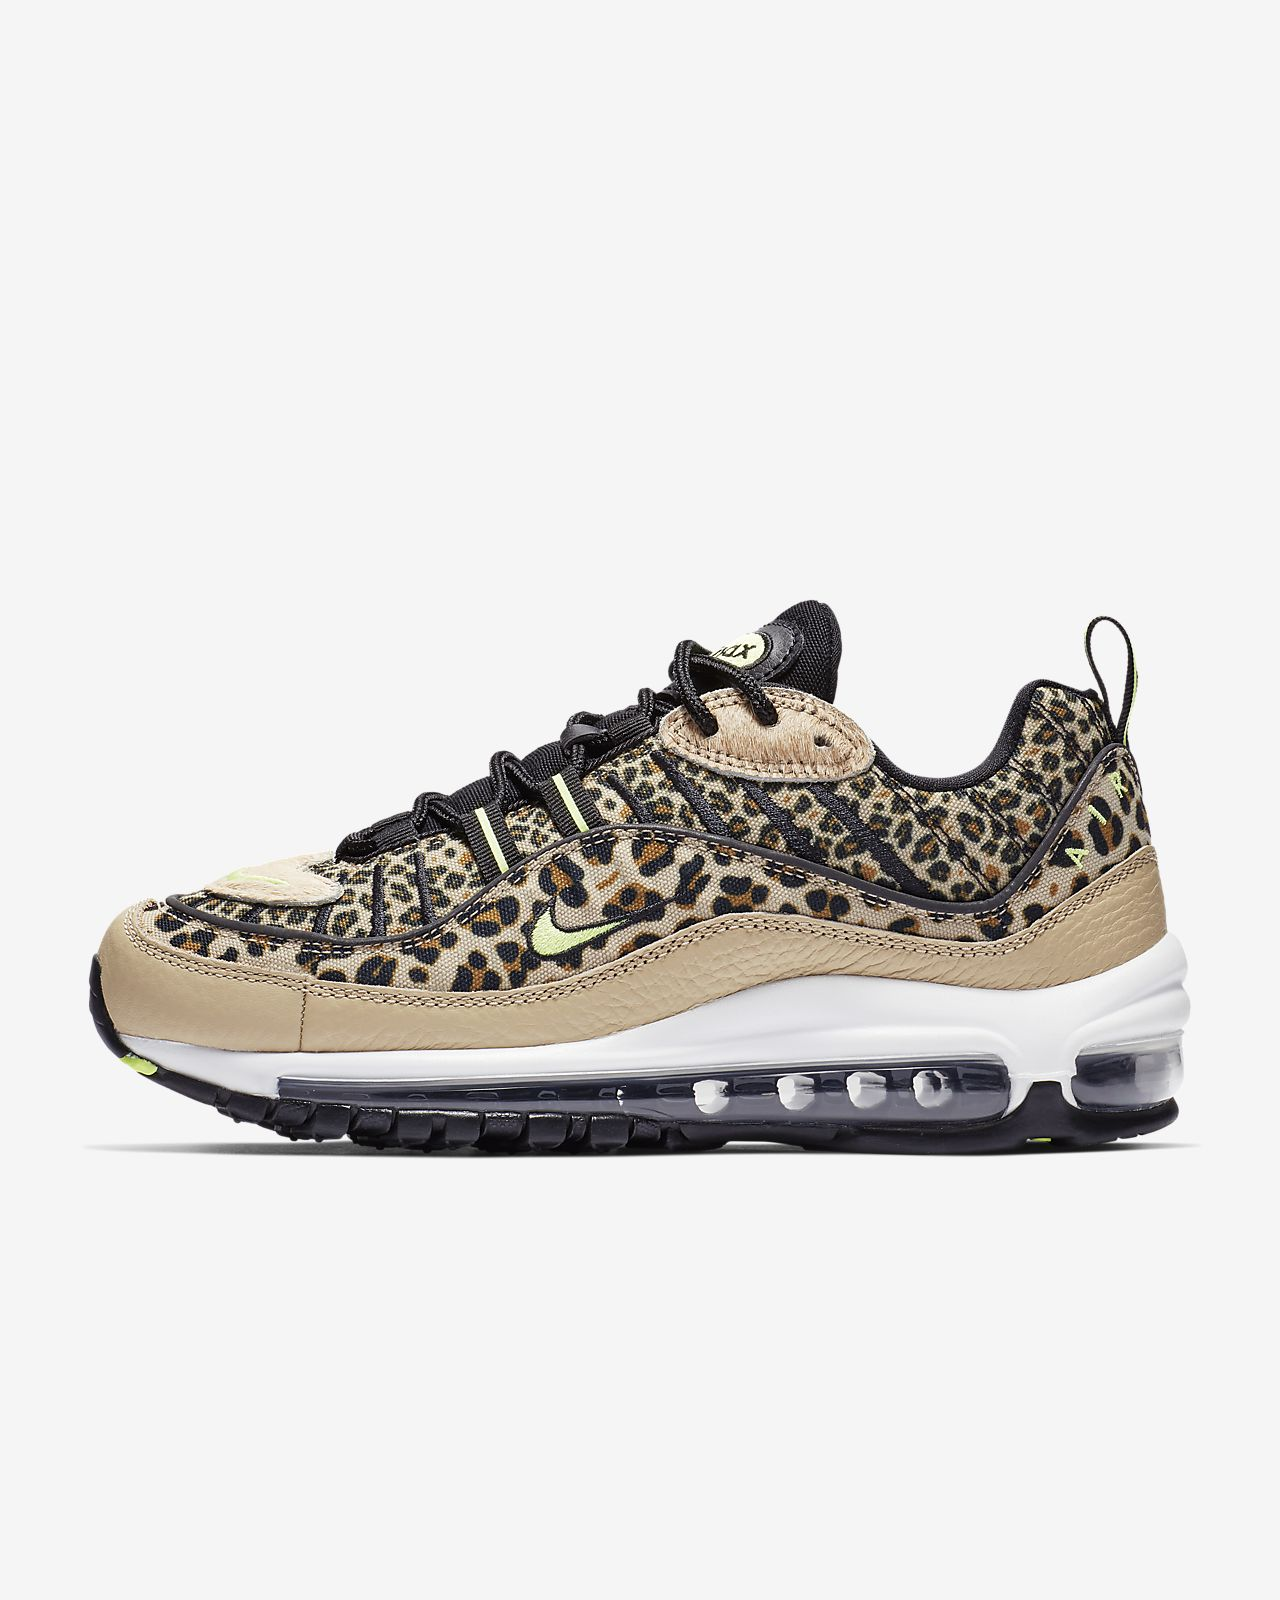 Nike Air Max 98 Premium Animal Damenschuh